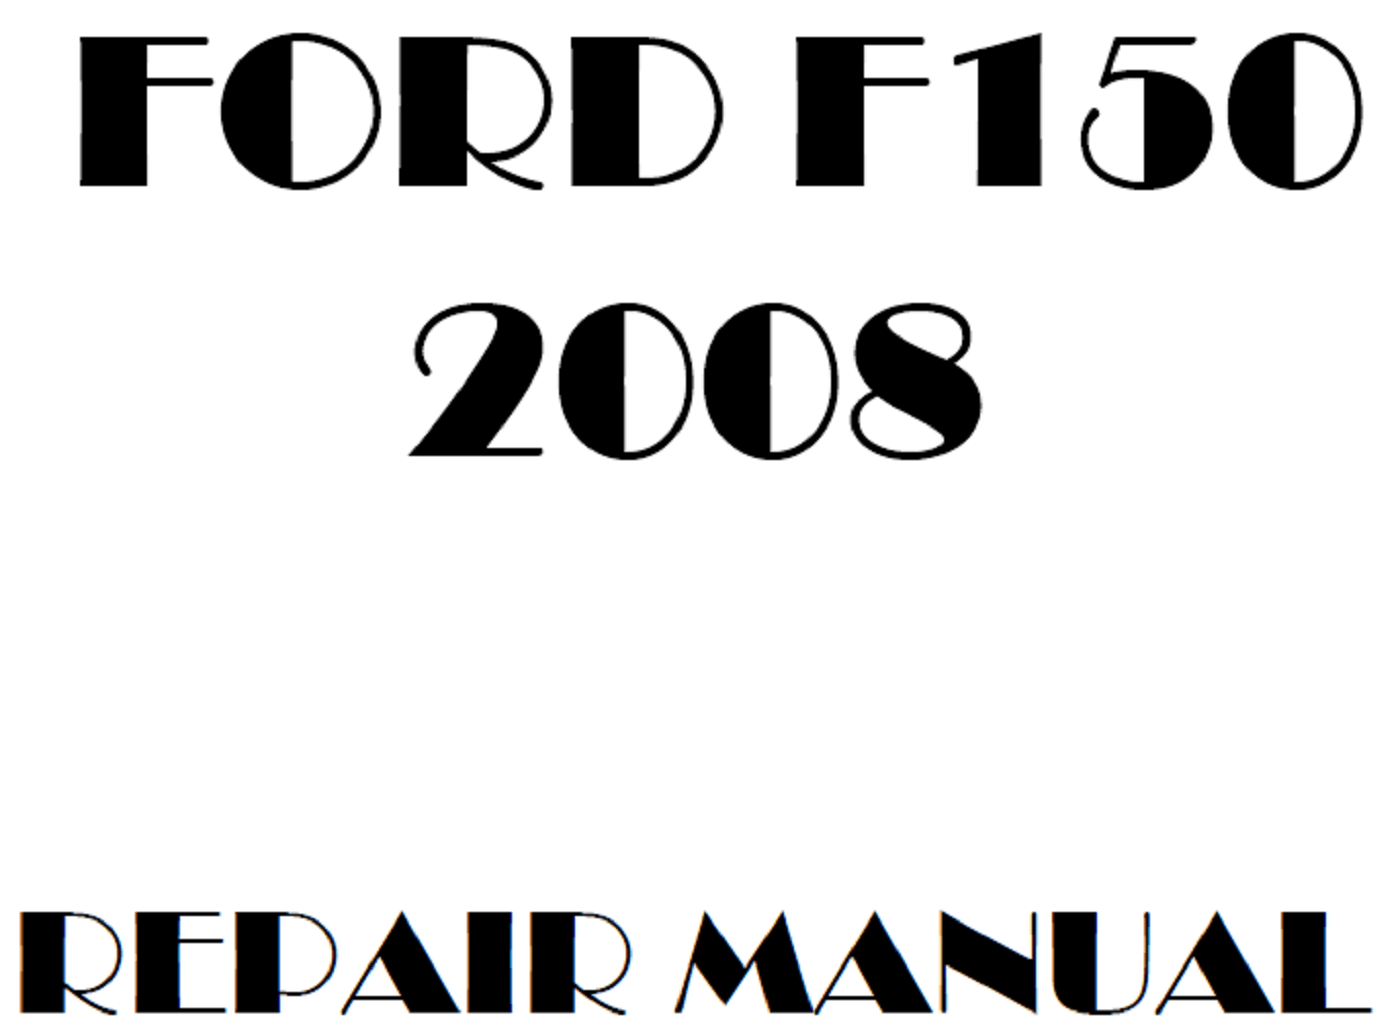 2008 Ford F150 repair manual